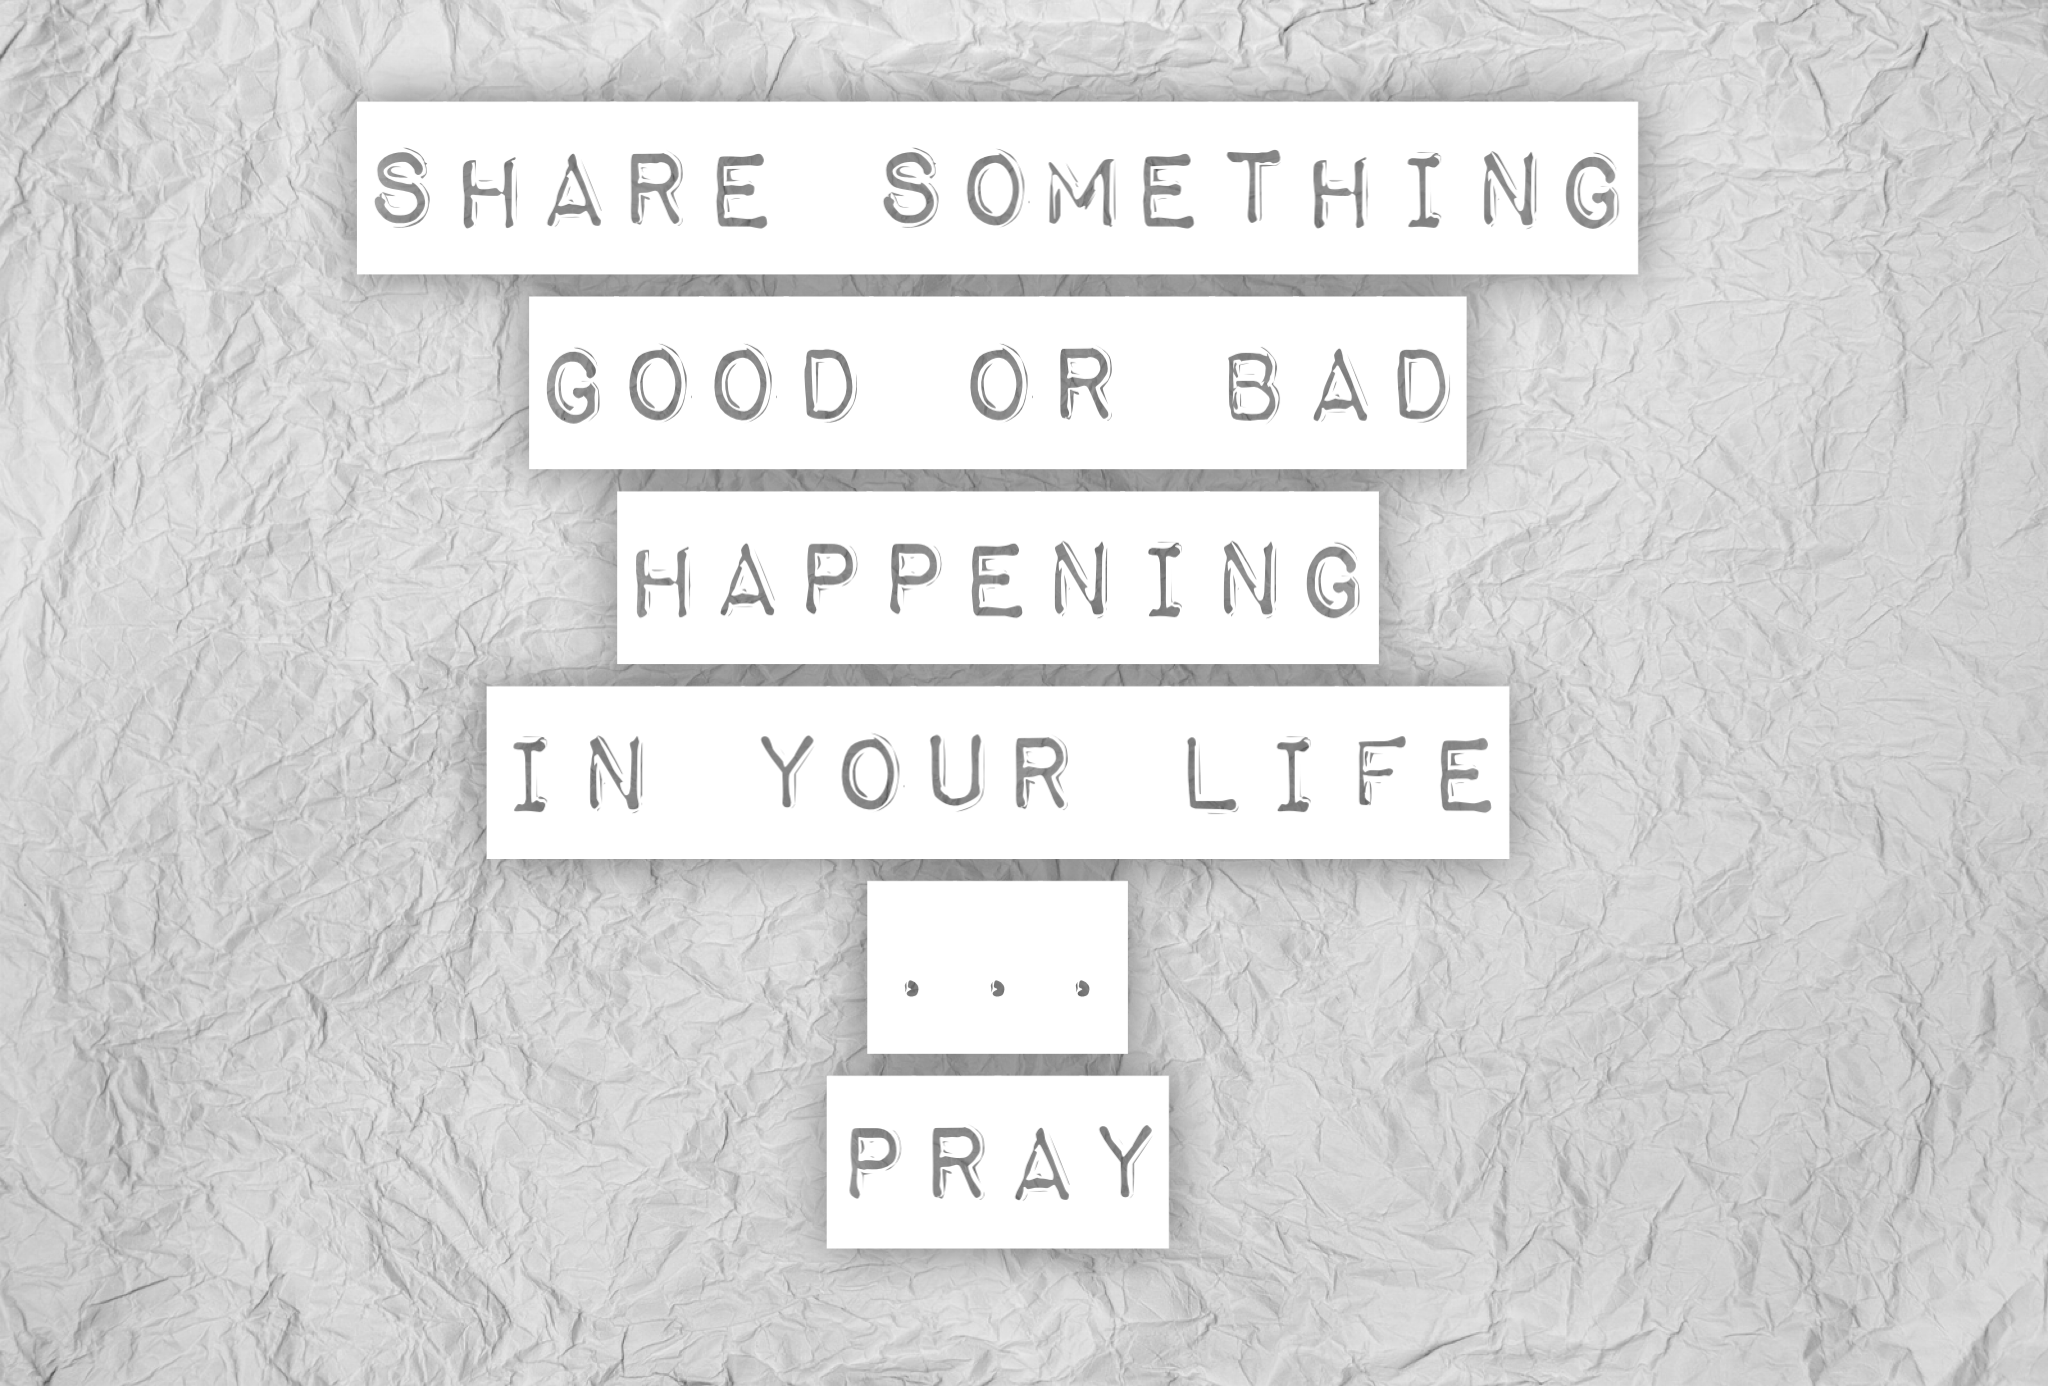 SHARE&PRAY.PNG